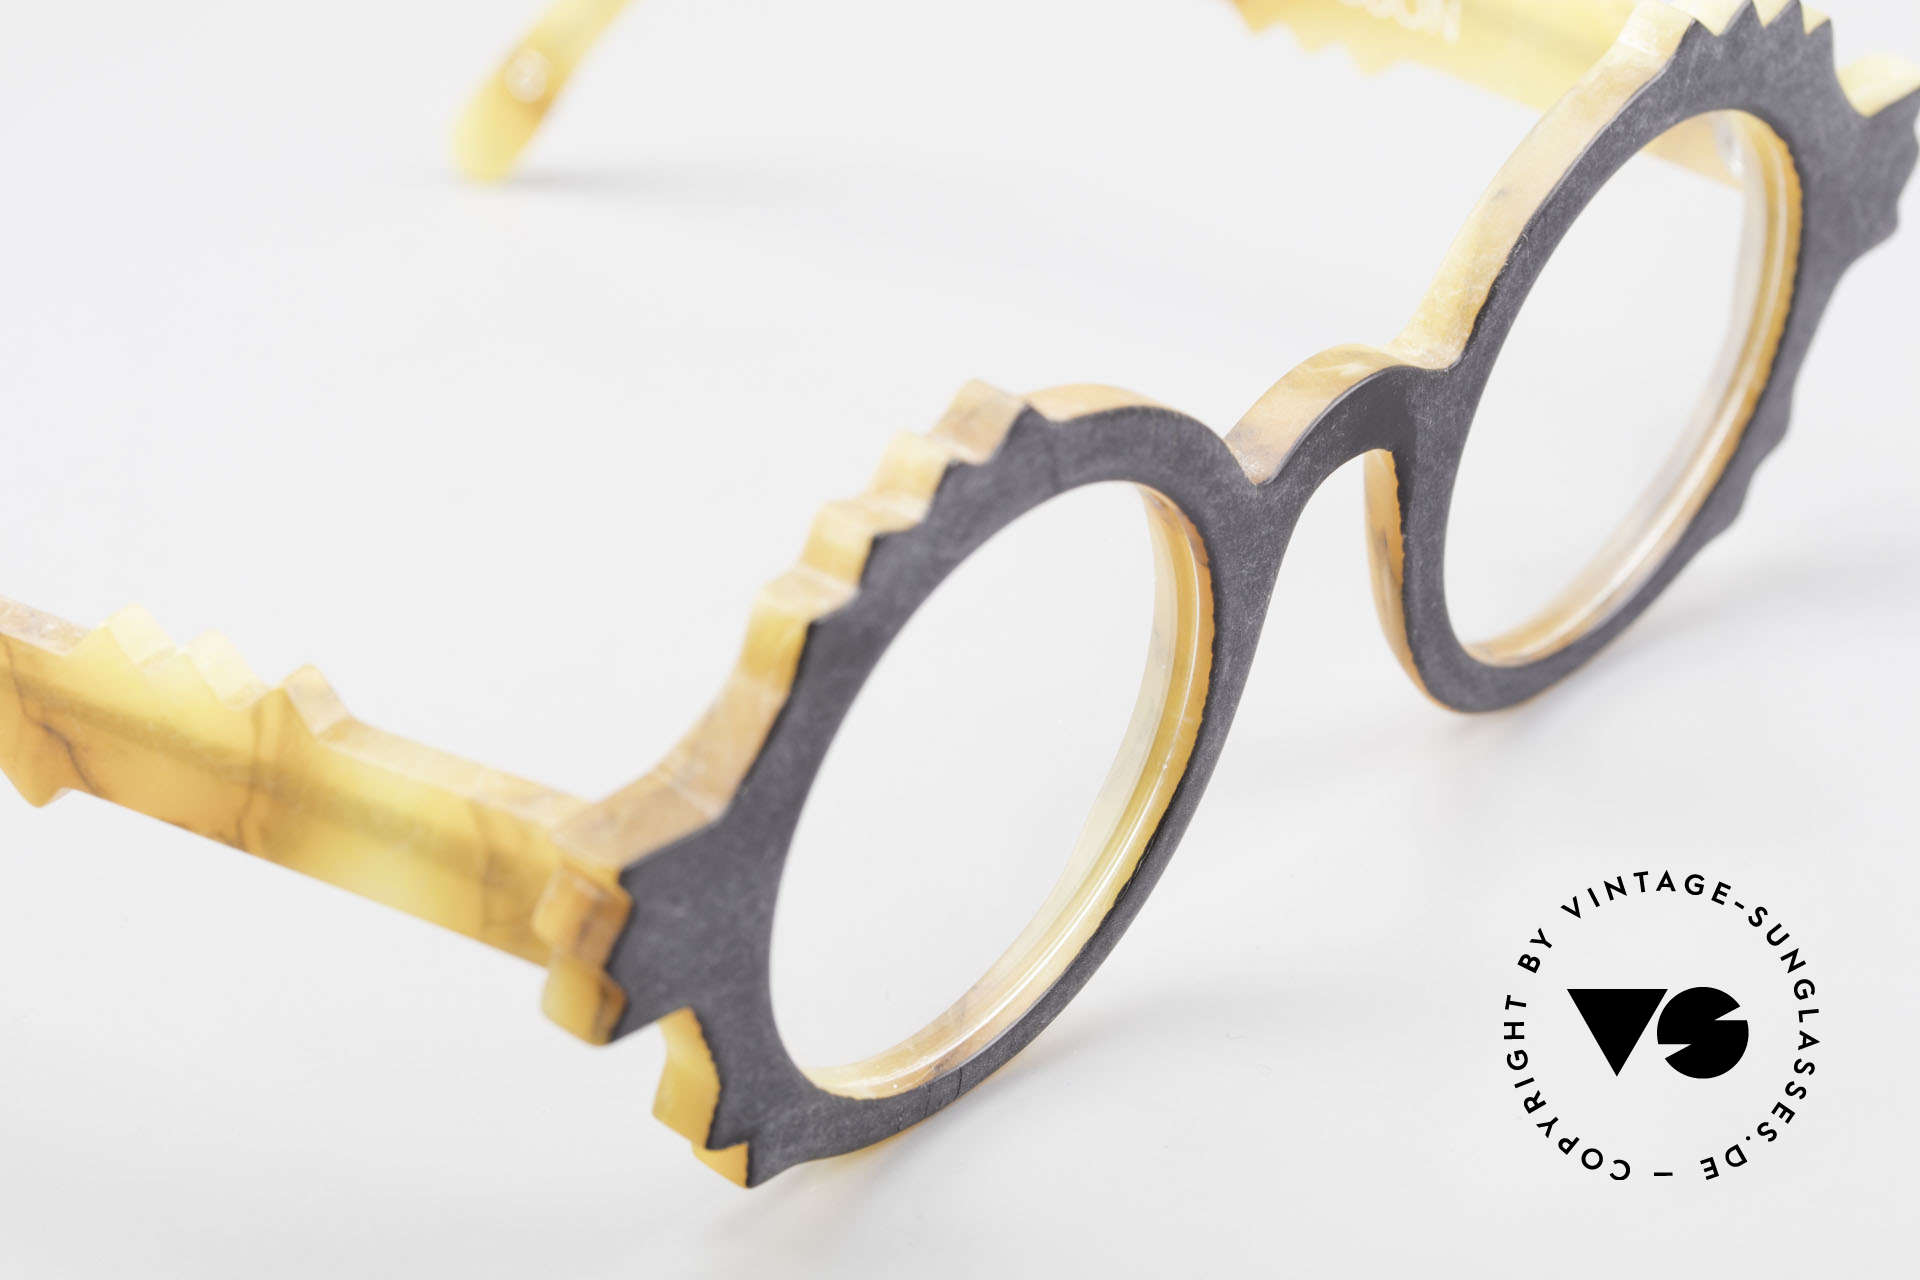 Anne Et Valentin Herrison Elaborate 80's Vintage Glasses, UNWORN, single item, comes with an orig. case, Made for Women